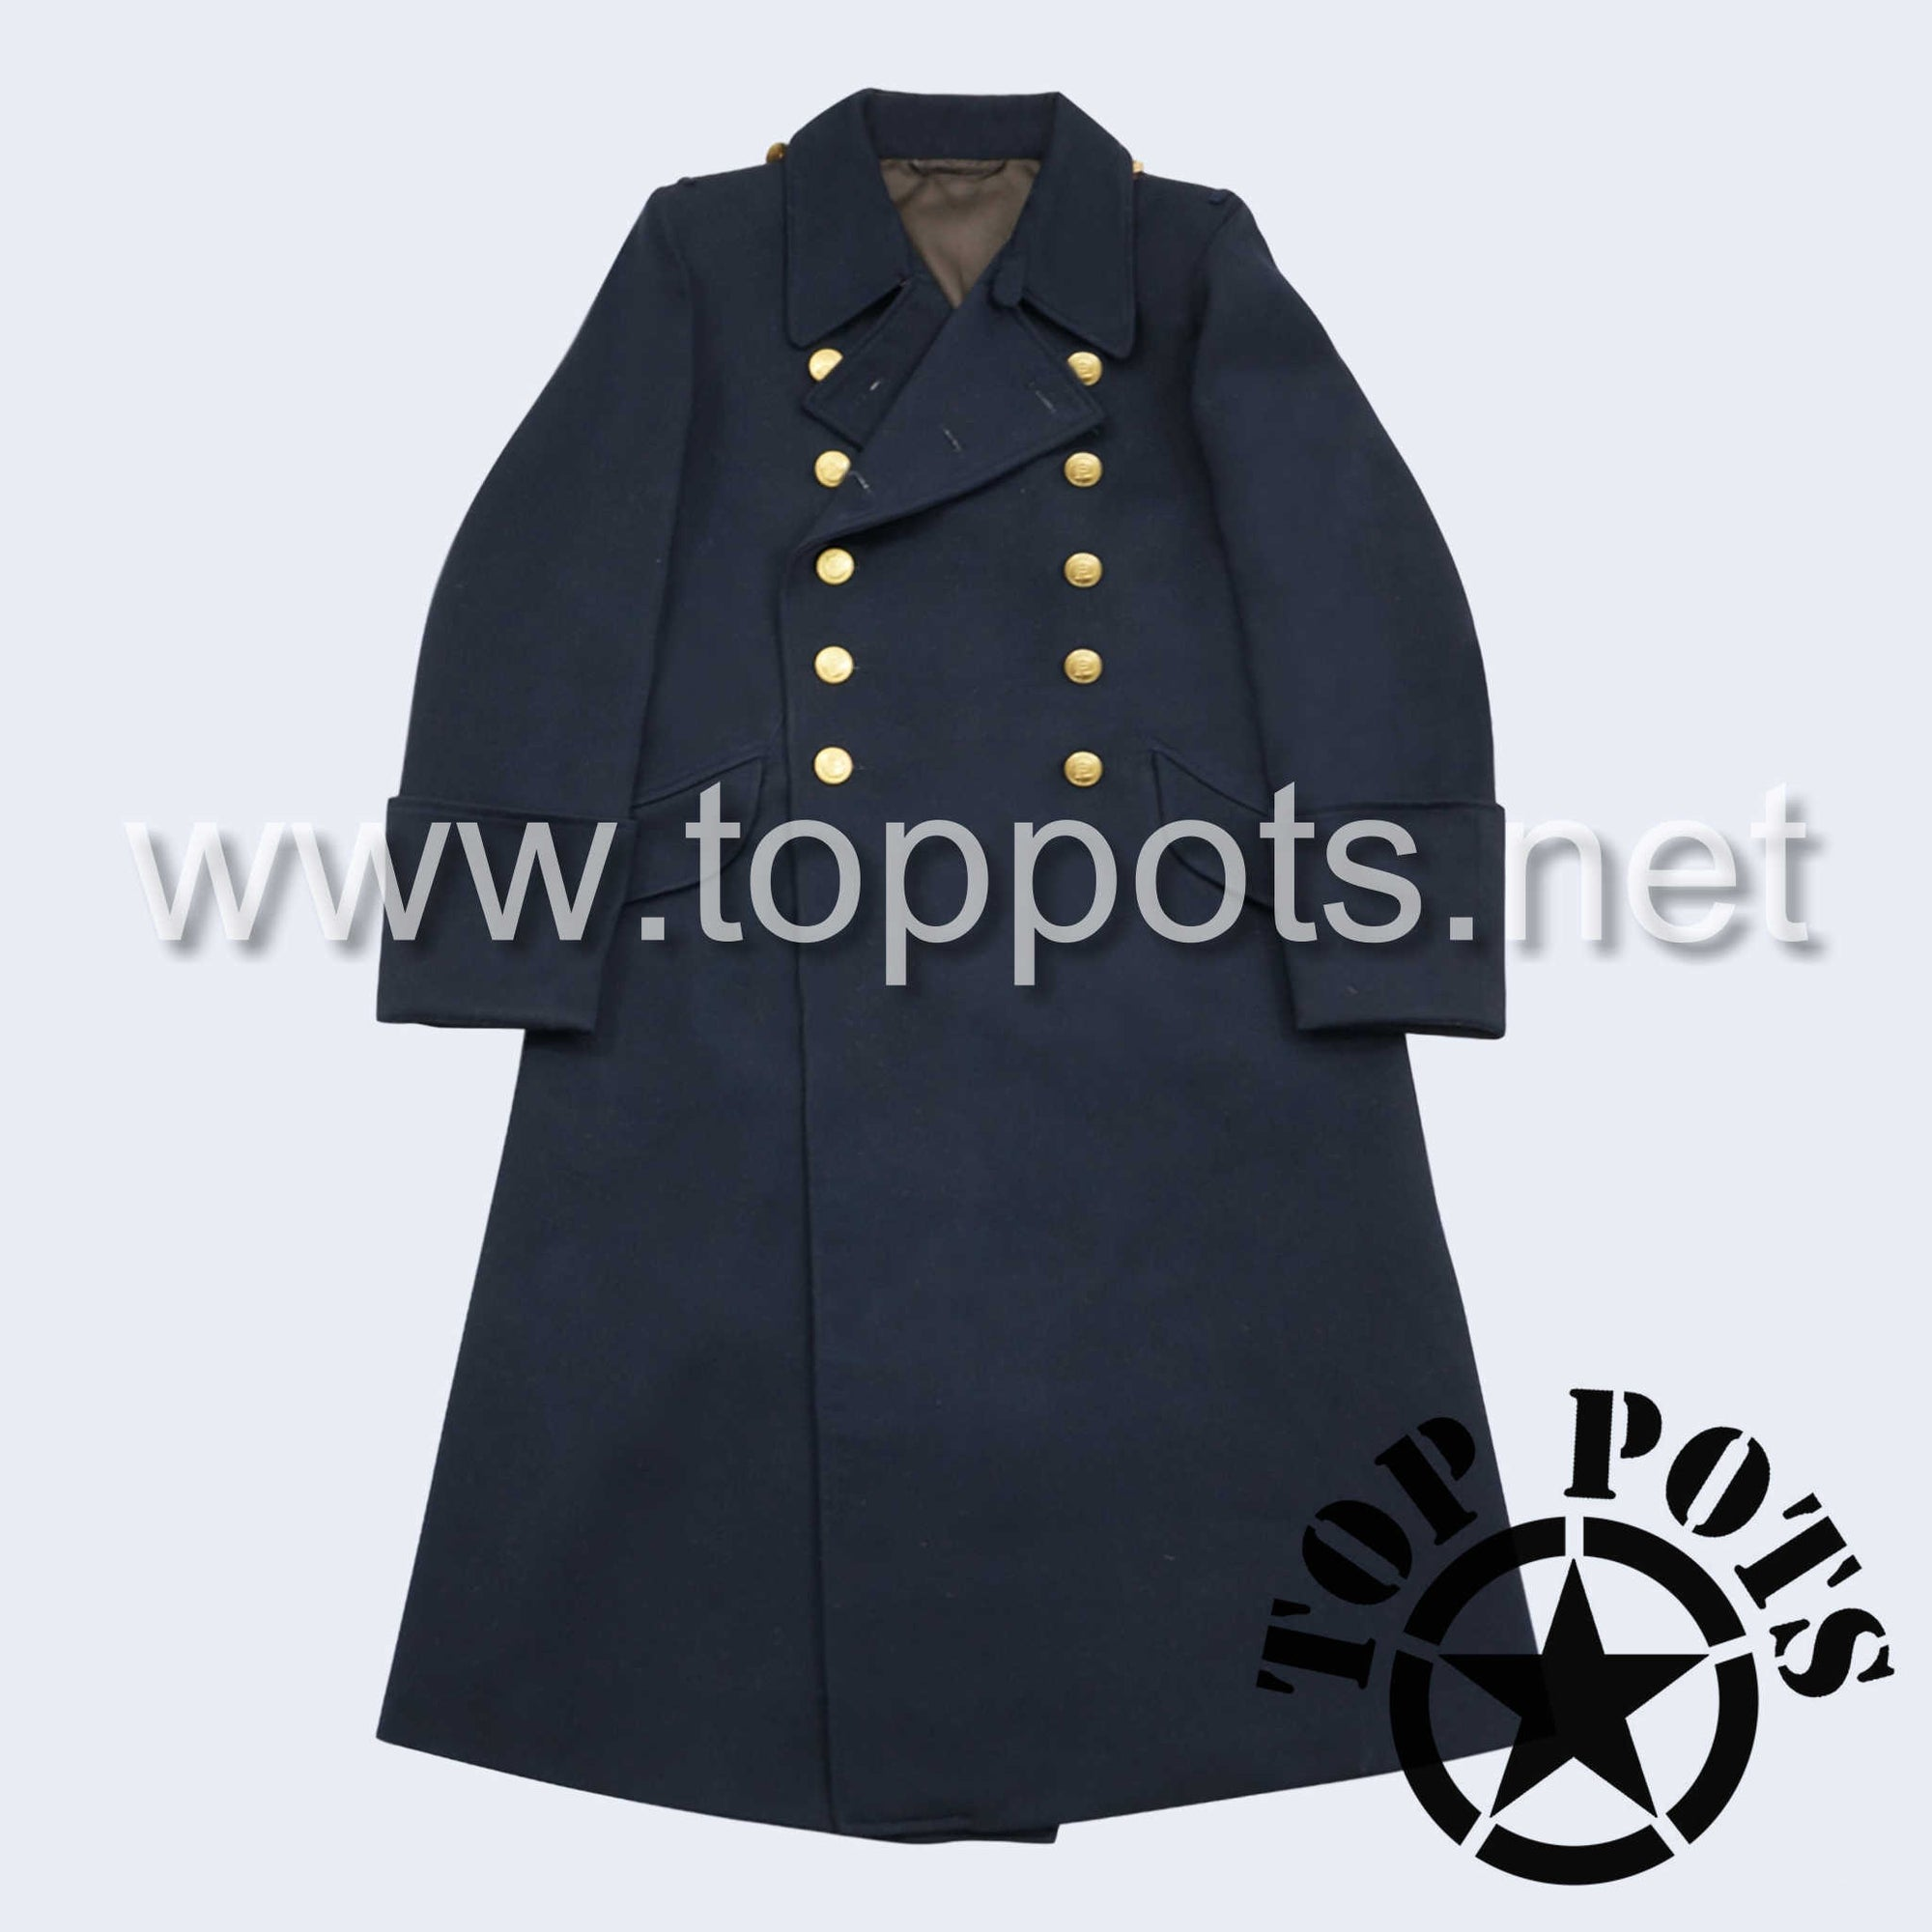 WWII German Navy Kriegsmarine Uniform Overcoat Greatcoat Winter Jacket Navy Blue Wool - Officer